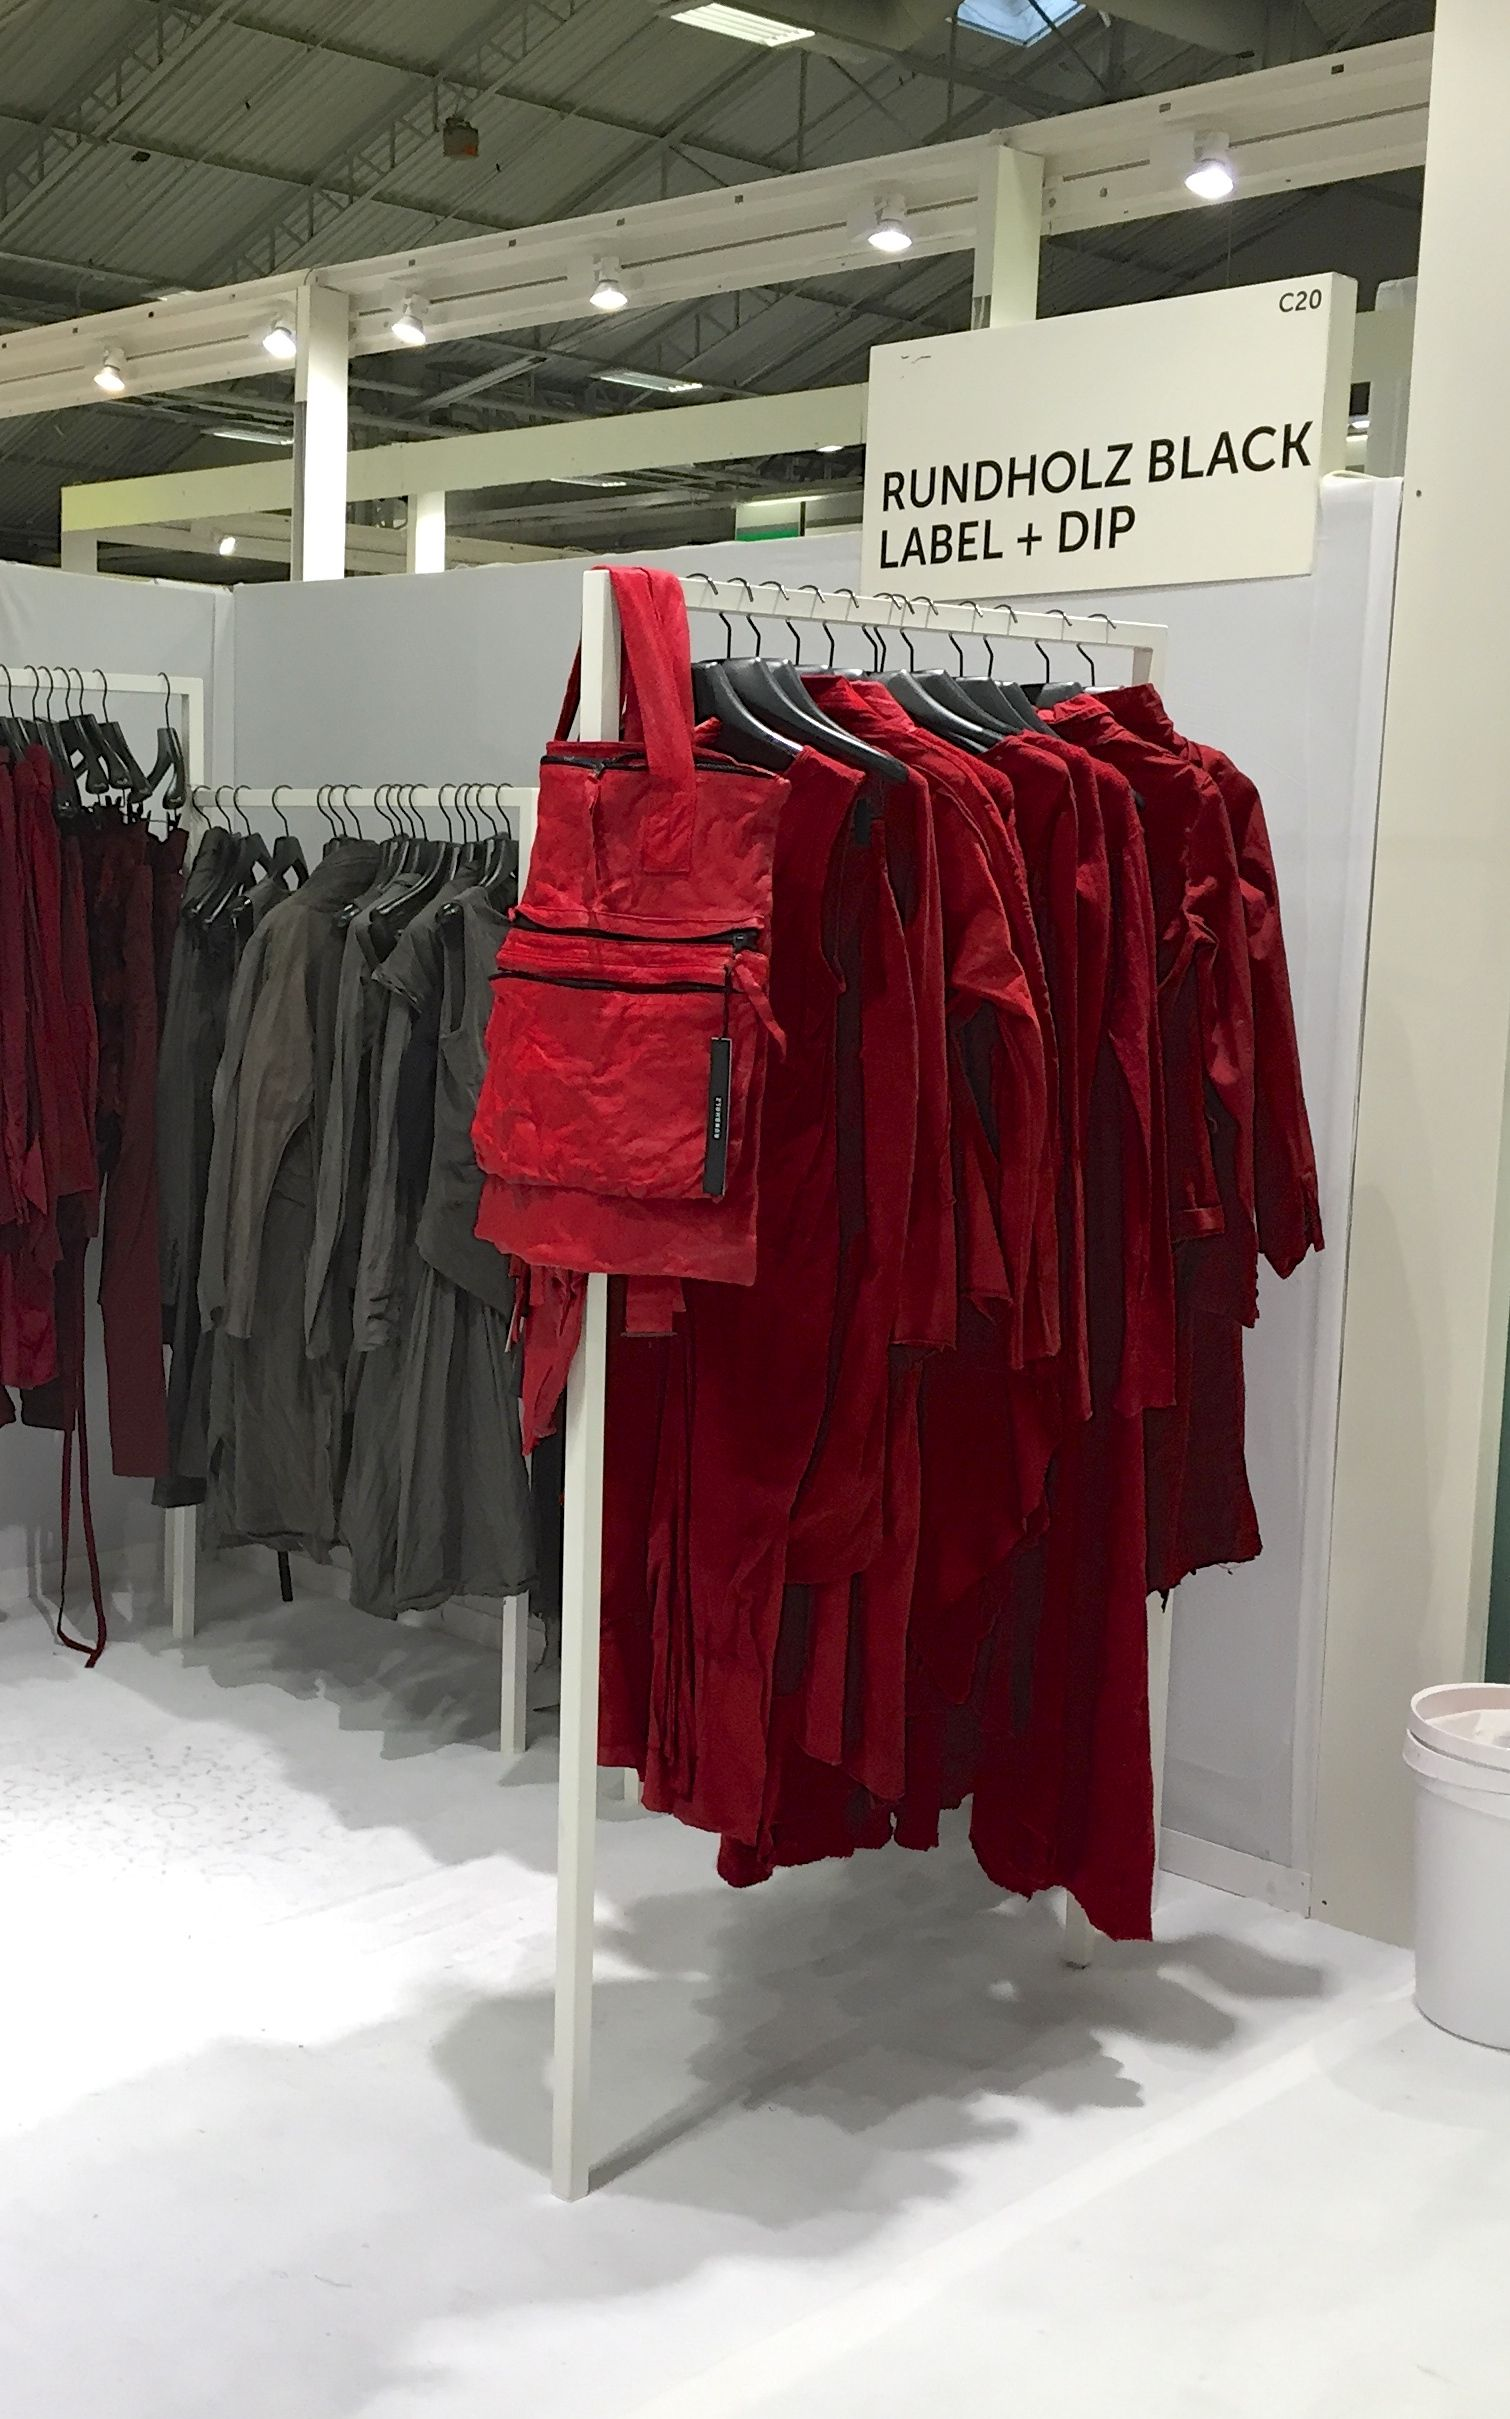 Red flannel inn paradise mi  Rundholz Black Label and DIP booth in Paris  we loved the red for